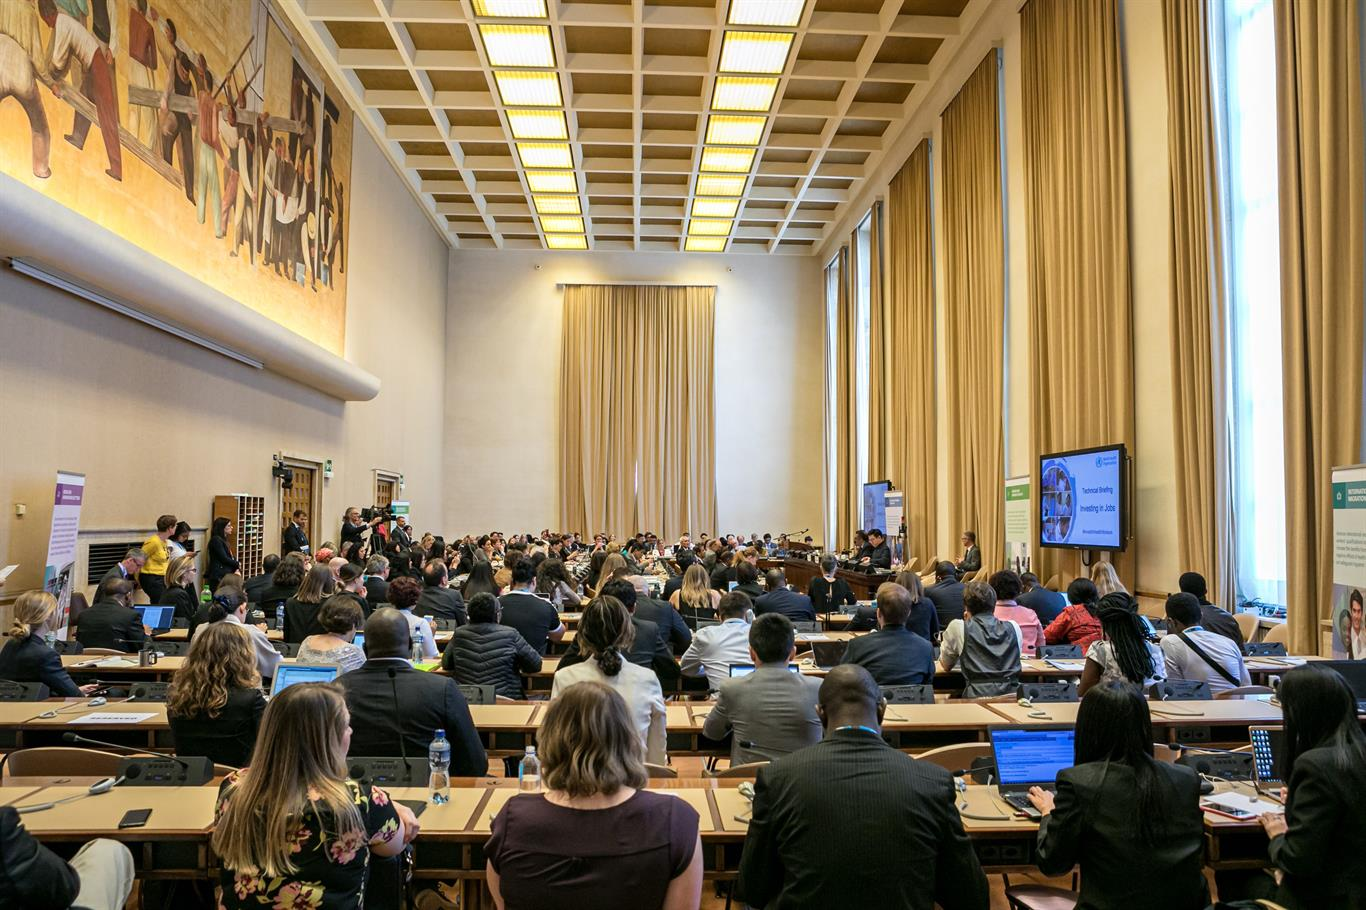 72nd World Health Assembly (WHA)